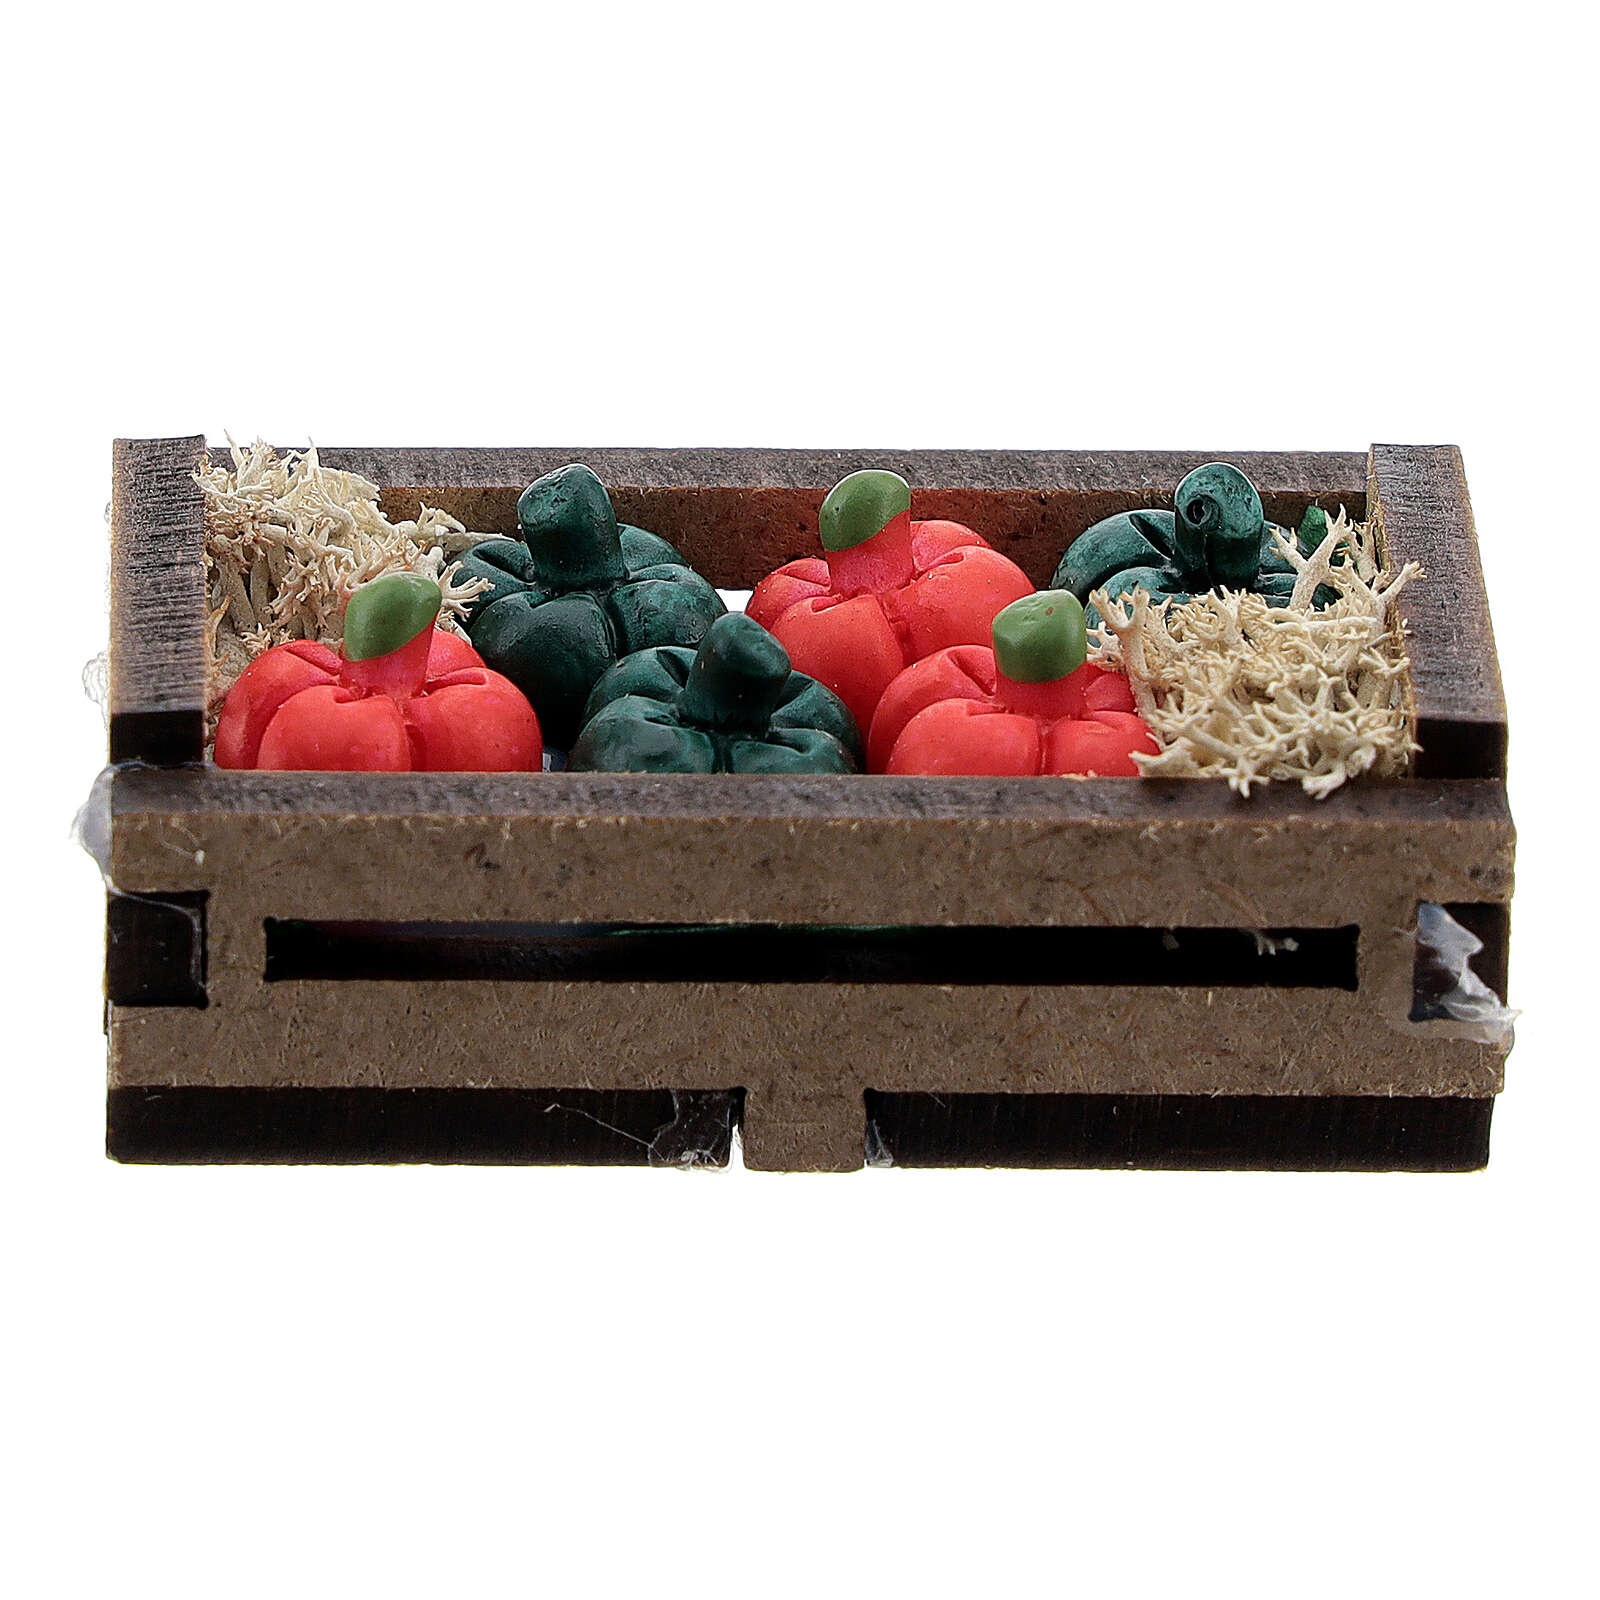 Resin peppers in a box for Nativity Scene with 10-12 cm figurines 4